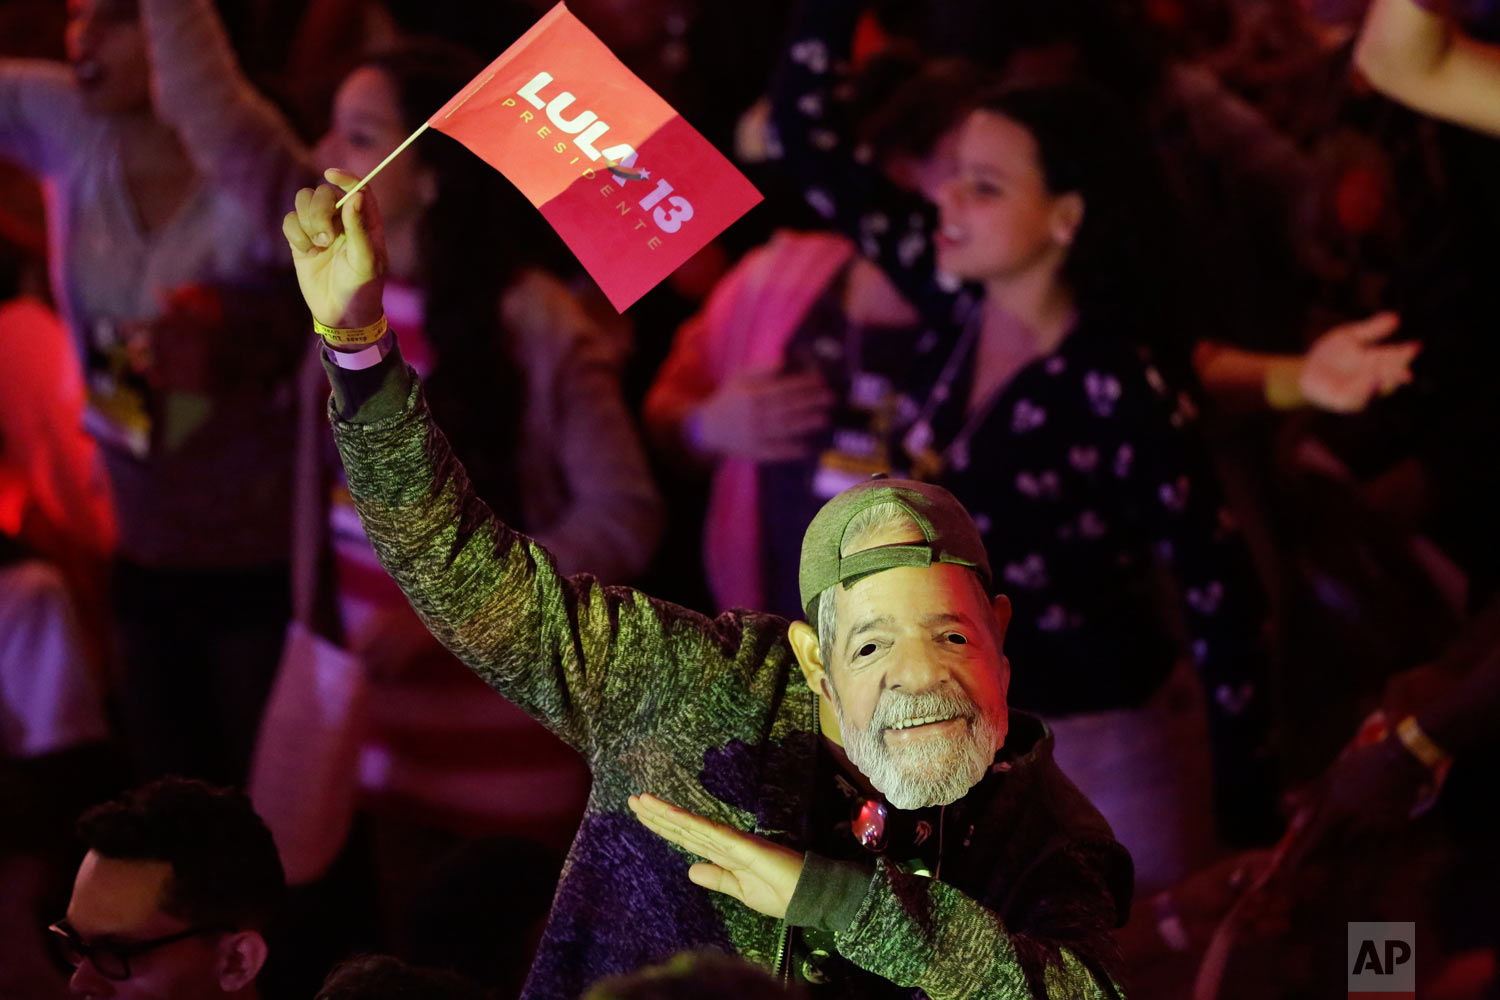 A man wears a mask depicting the Brazil's former President Luiz Inacio Lula da Silva during a Workers Party national convention in Sao Paulo, Brazil, Aug. 4, 2018. The convention confirmed the jailed Lula da Silva as their candidate for the country's presidency in October's election. Da Silva leads the polls by a large margins, but is likely to be barred by Brazil's electoral justice. (AP Photo/Nelson Antoine)